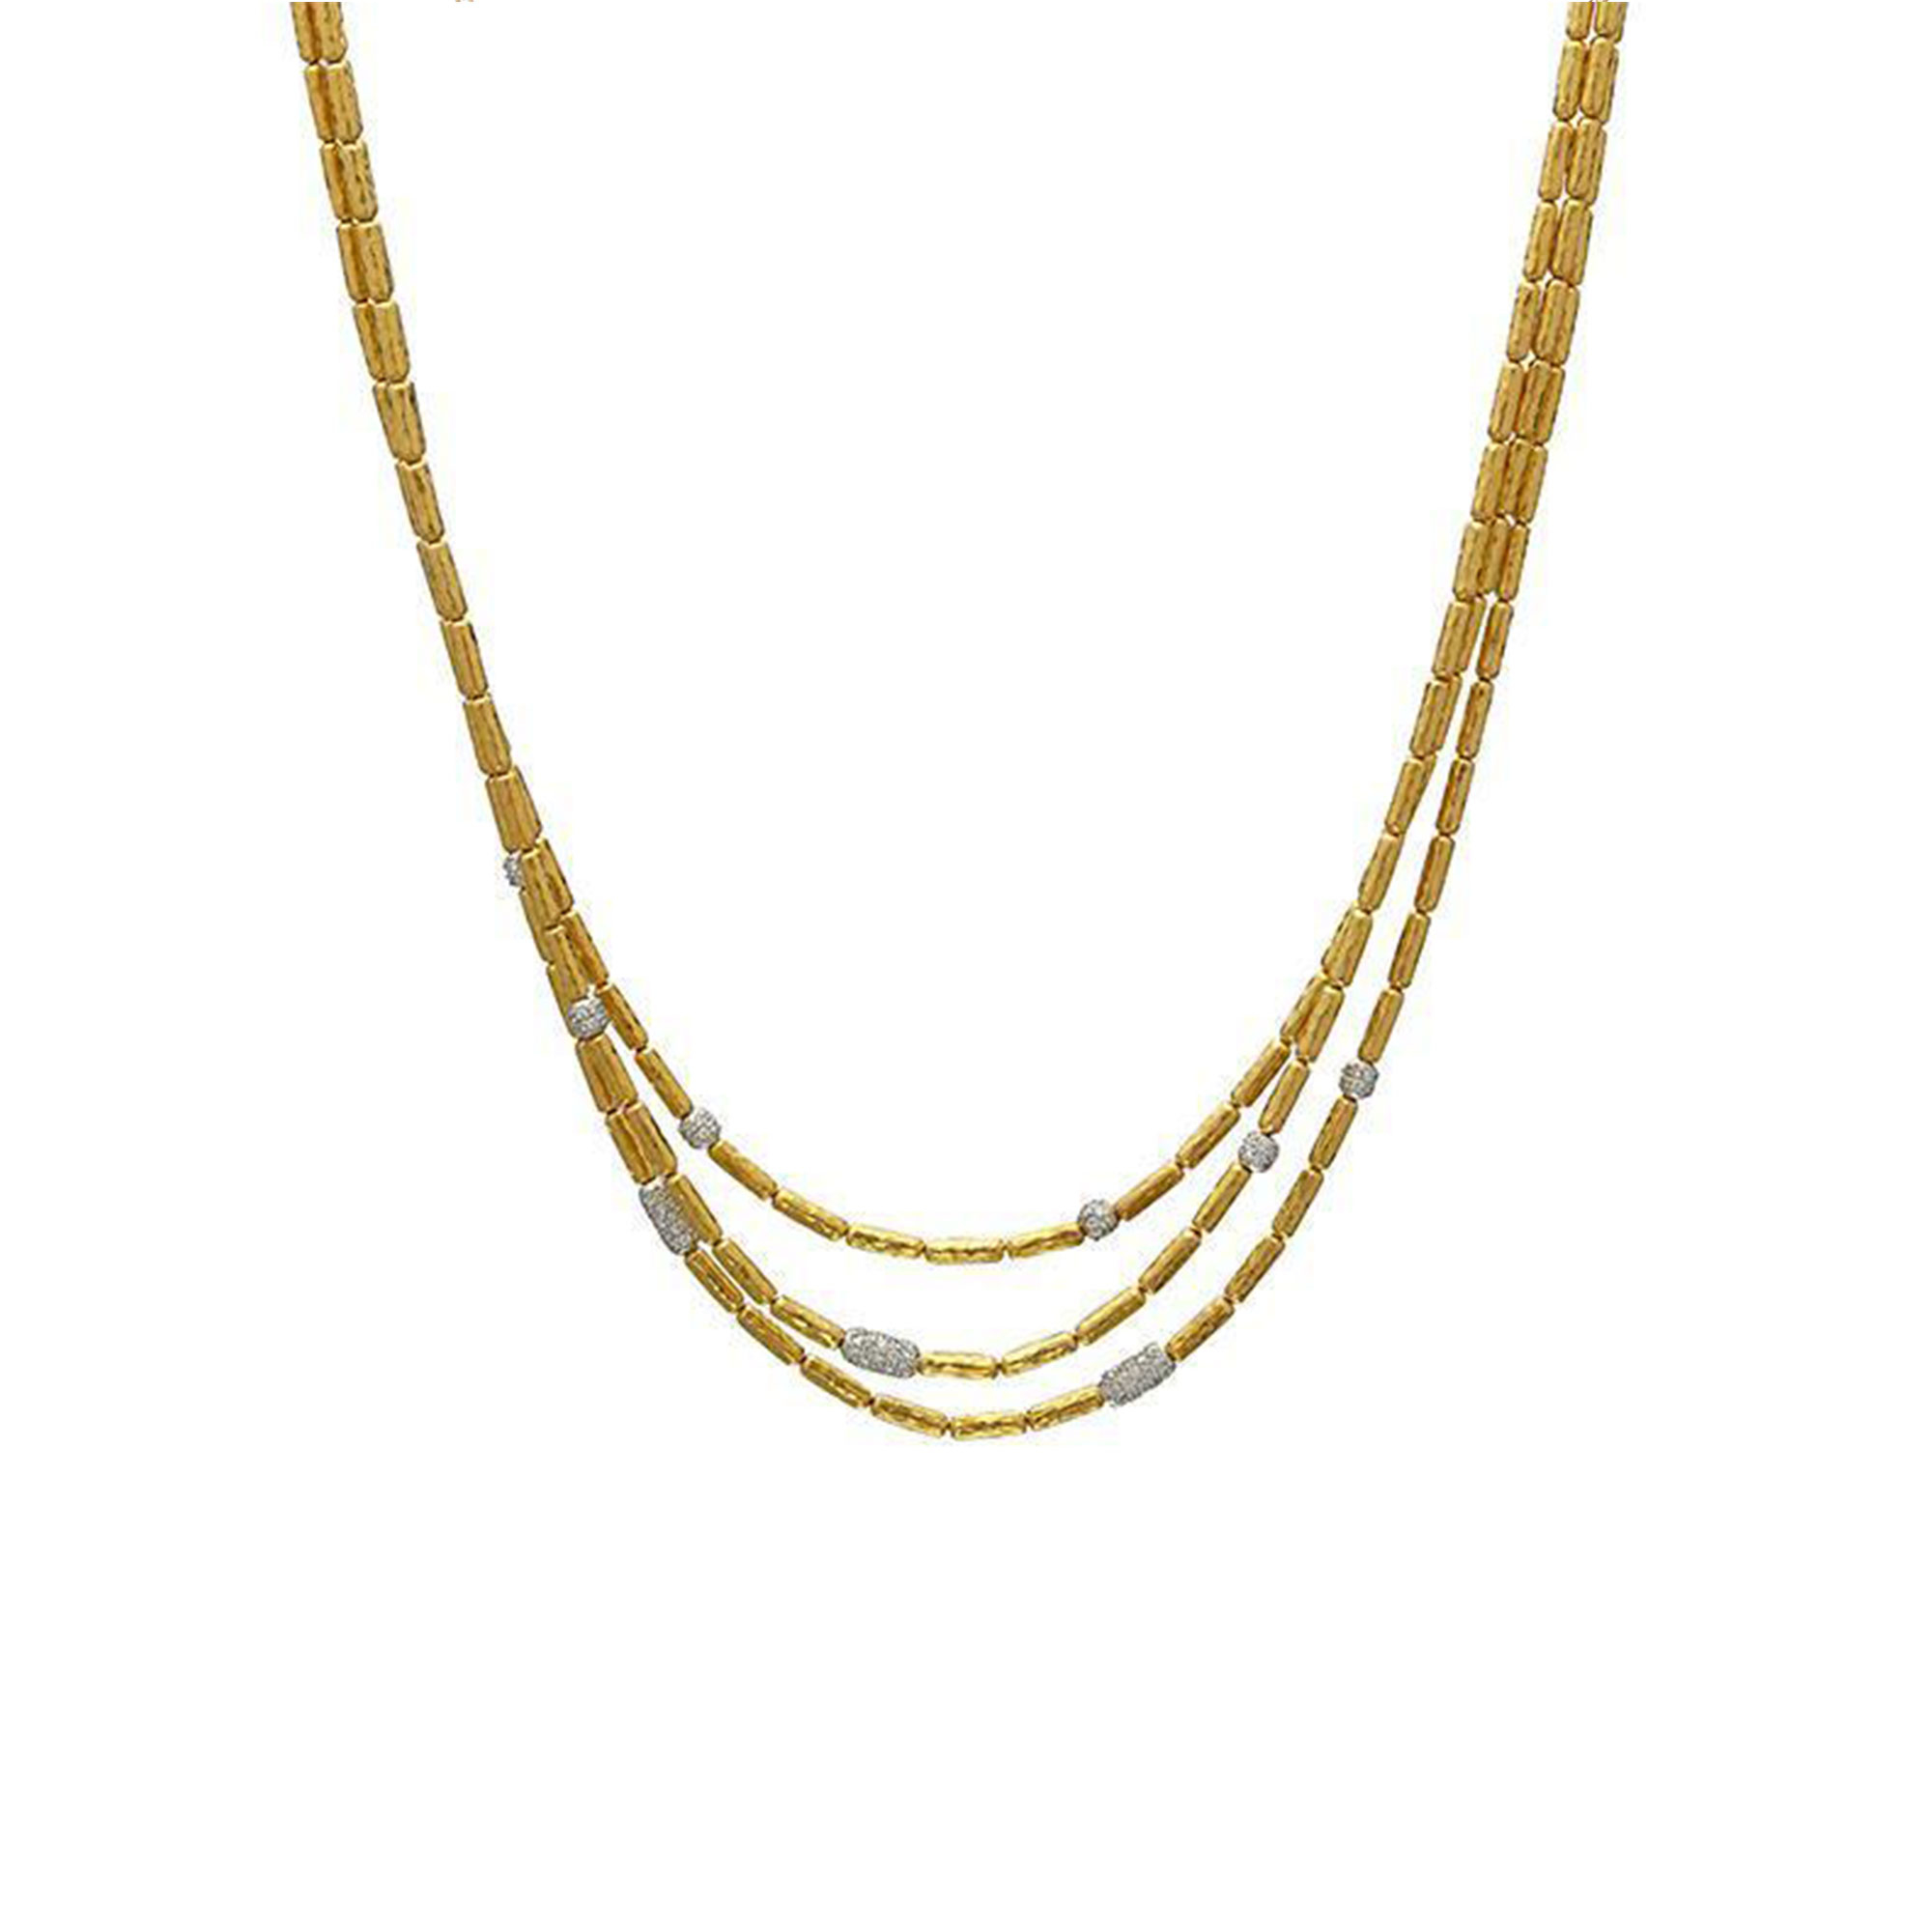 Gurhan 18-22-24K Yellow Gold 1.51cts White Diamond Gold Necklace with Stones NVN3-VPDI-9DIMX-GT18